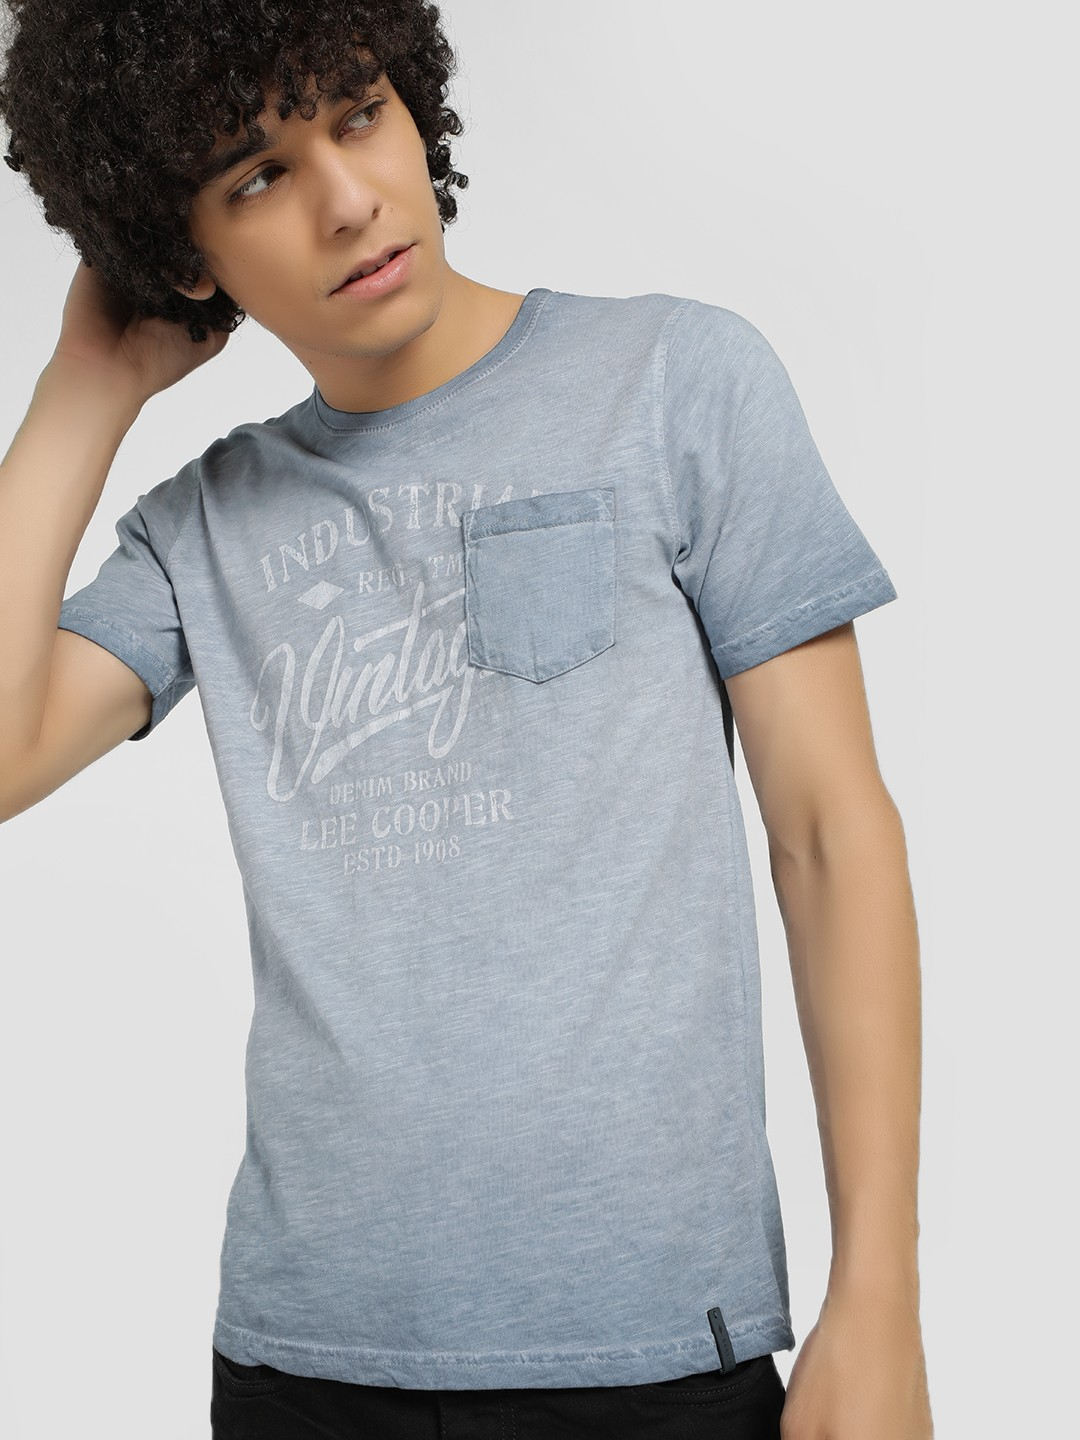 Lee Cooper Blue Ombre Placement Print T-Shirt 1